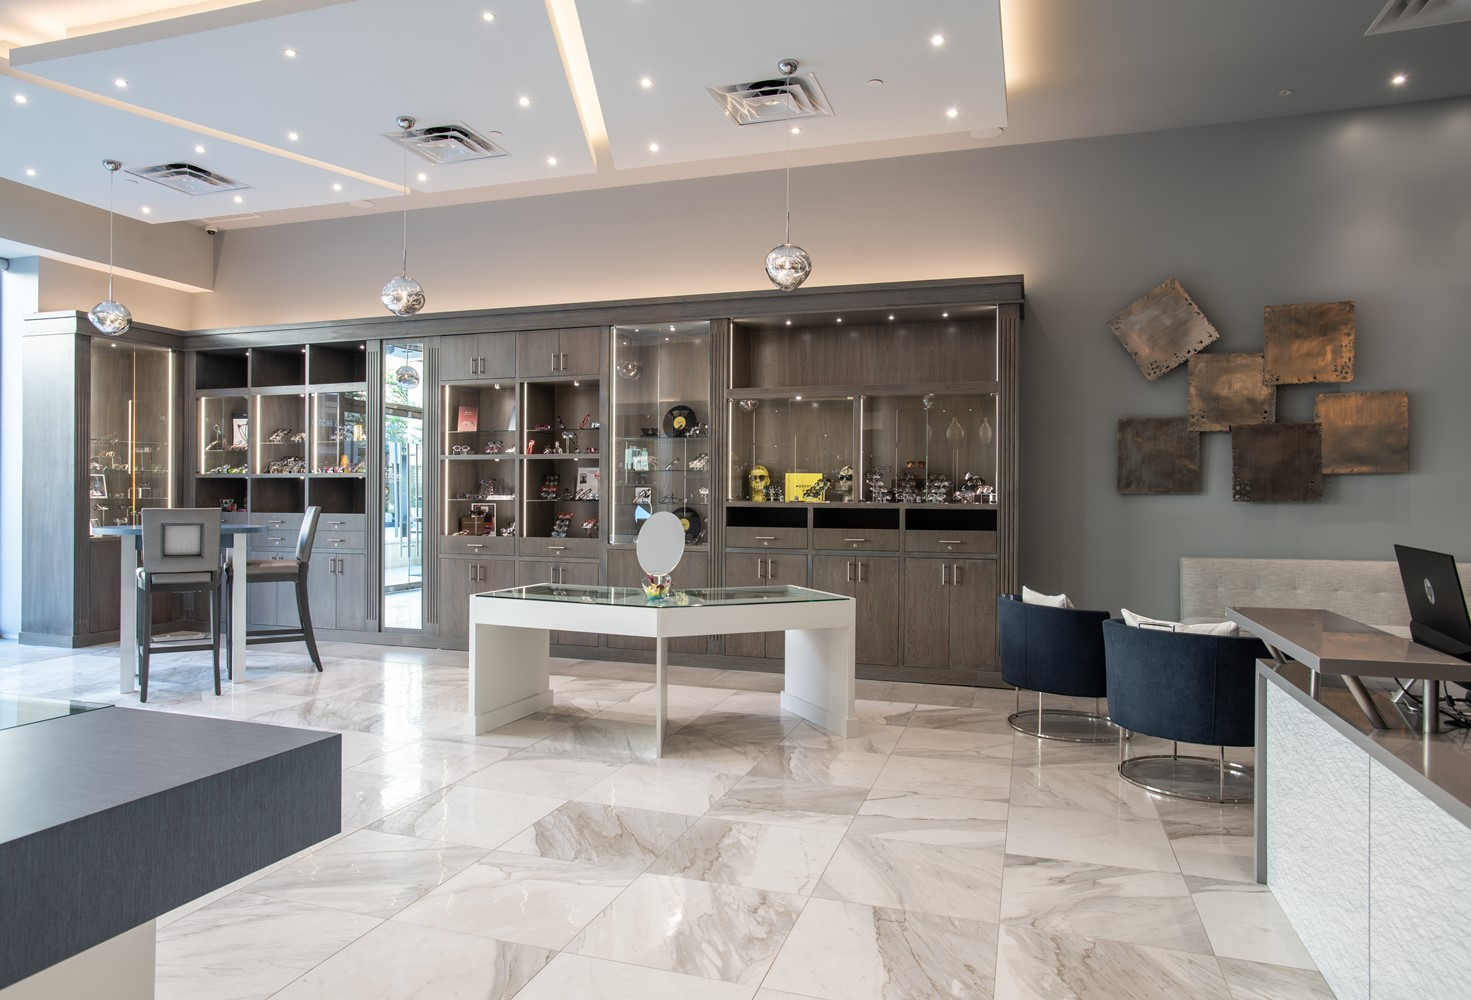 spectacles-legacy-west-plano-tx-showroom-interior